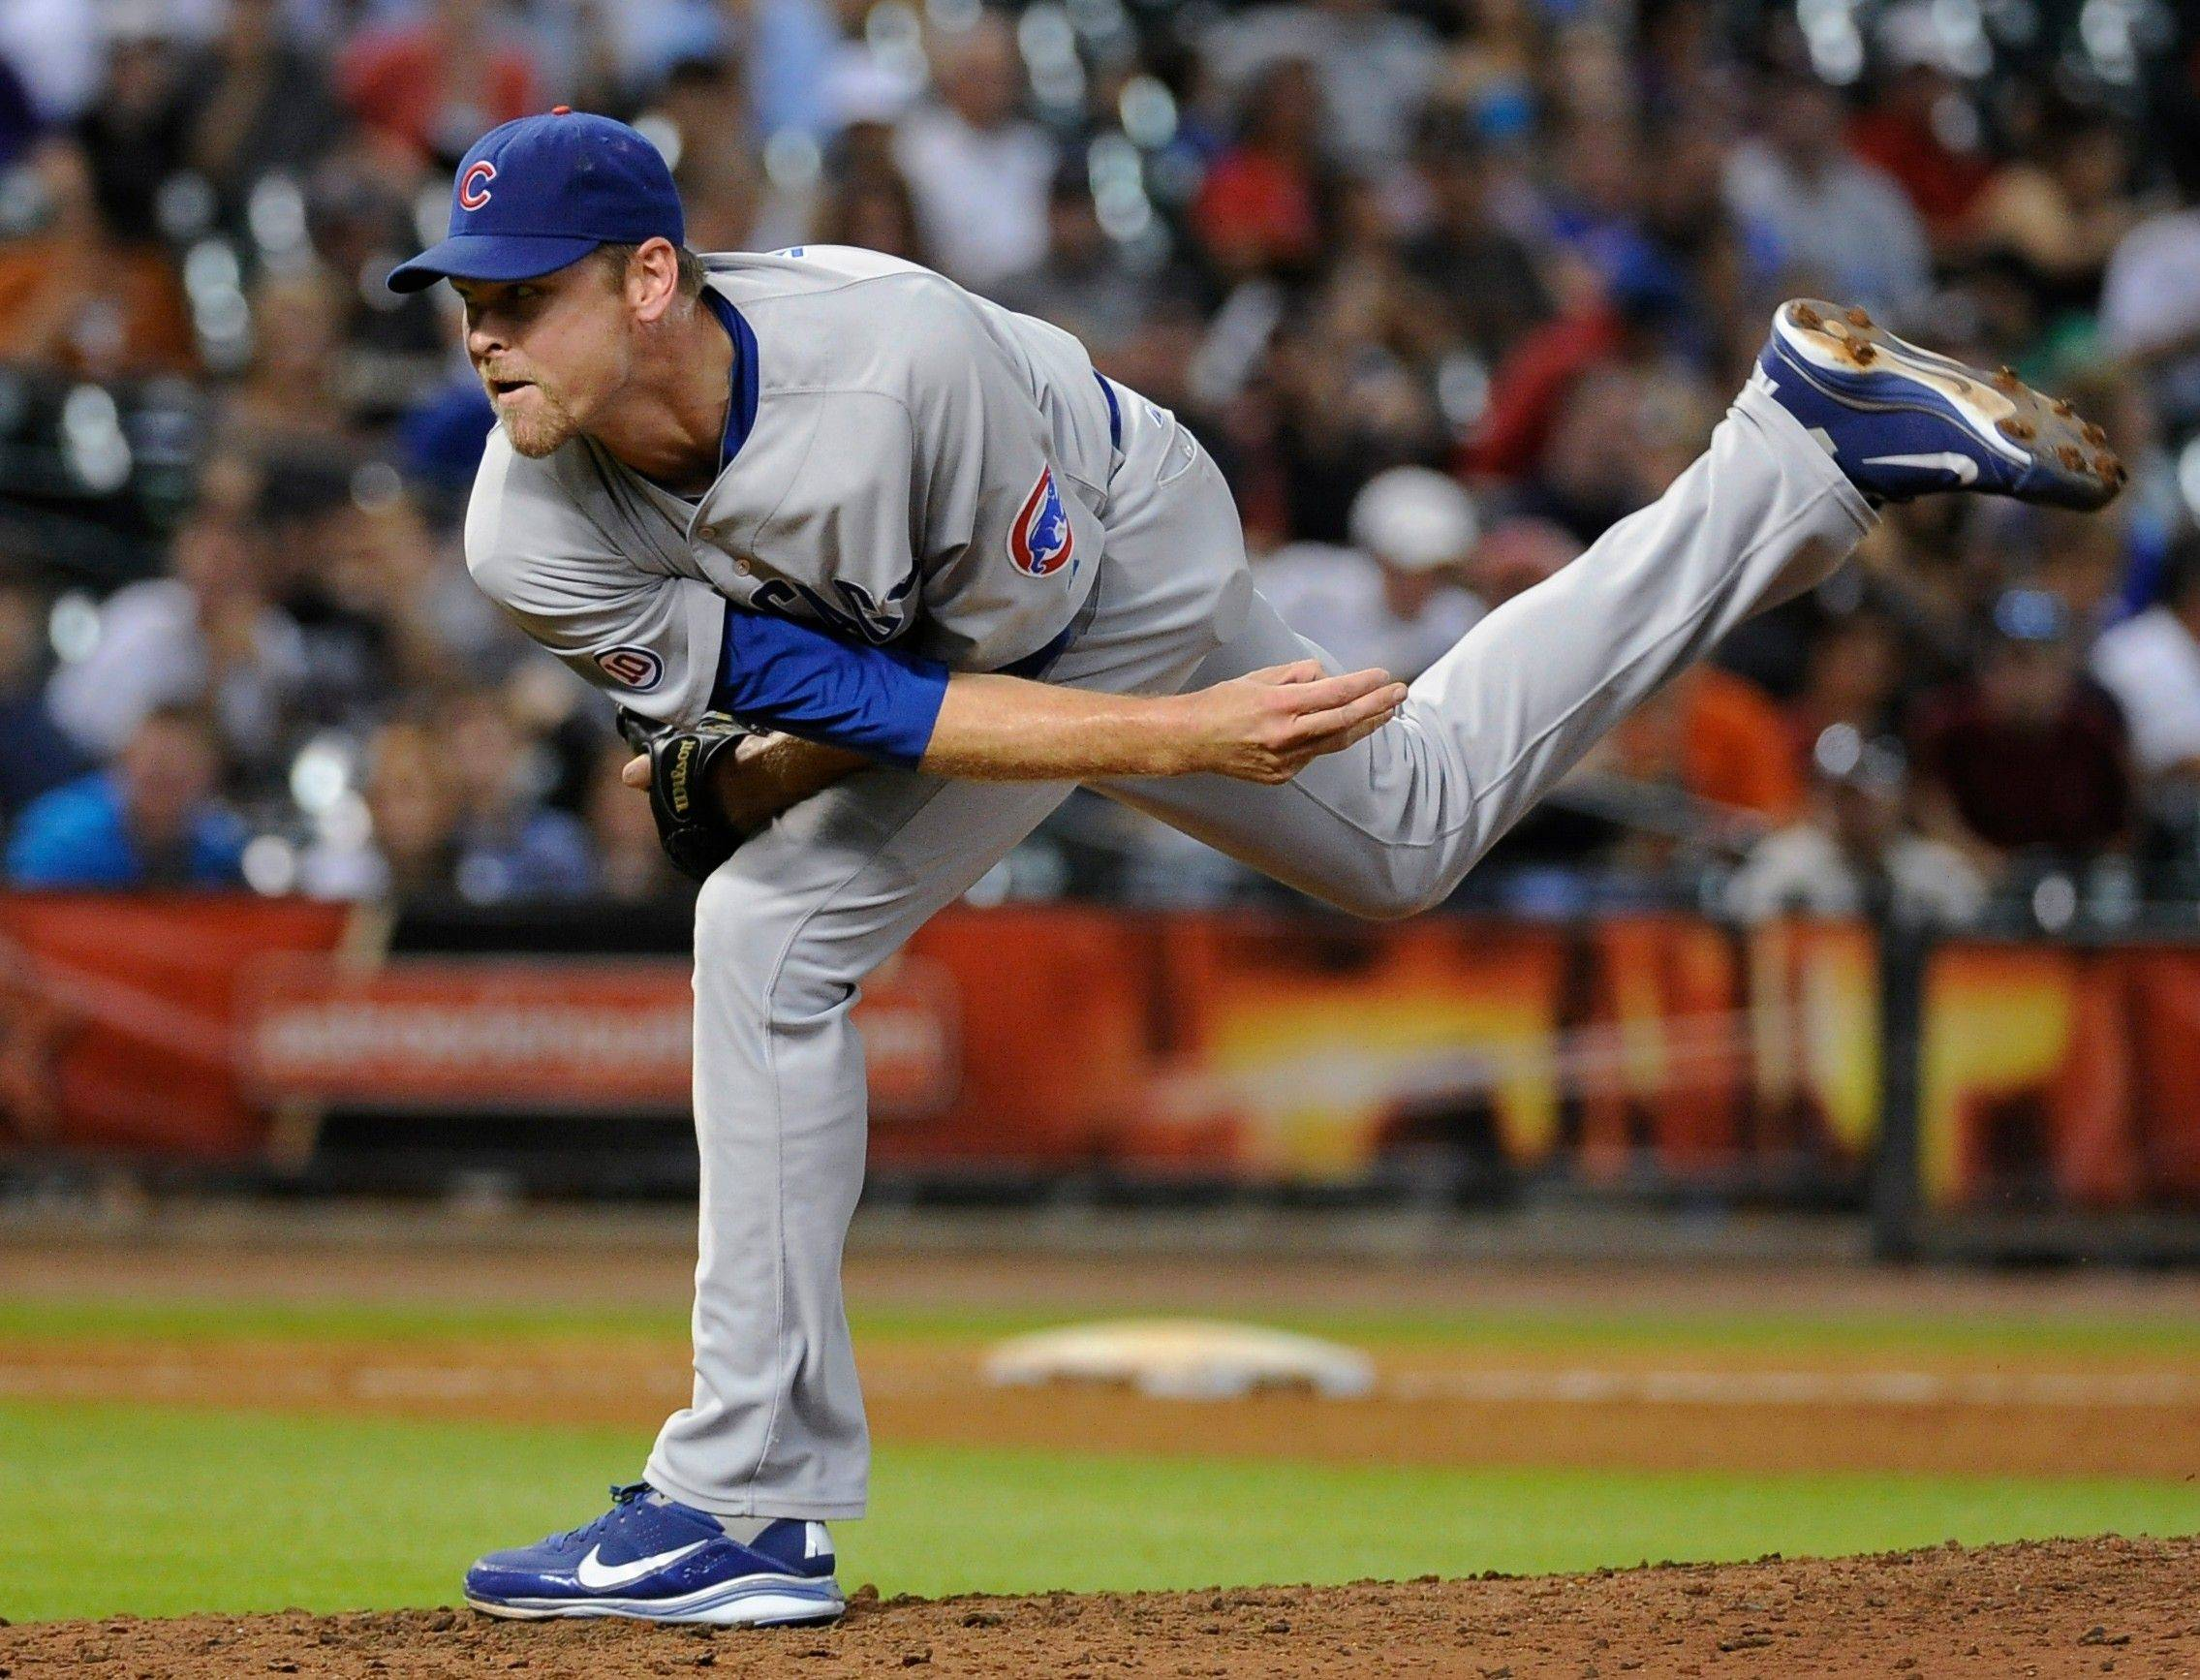 Cubs relief pitcher Kerry Wood has a tear in his left knee and will have arthroscopic surgery after the season.